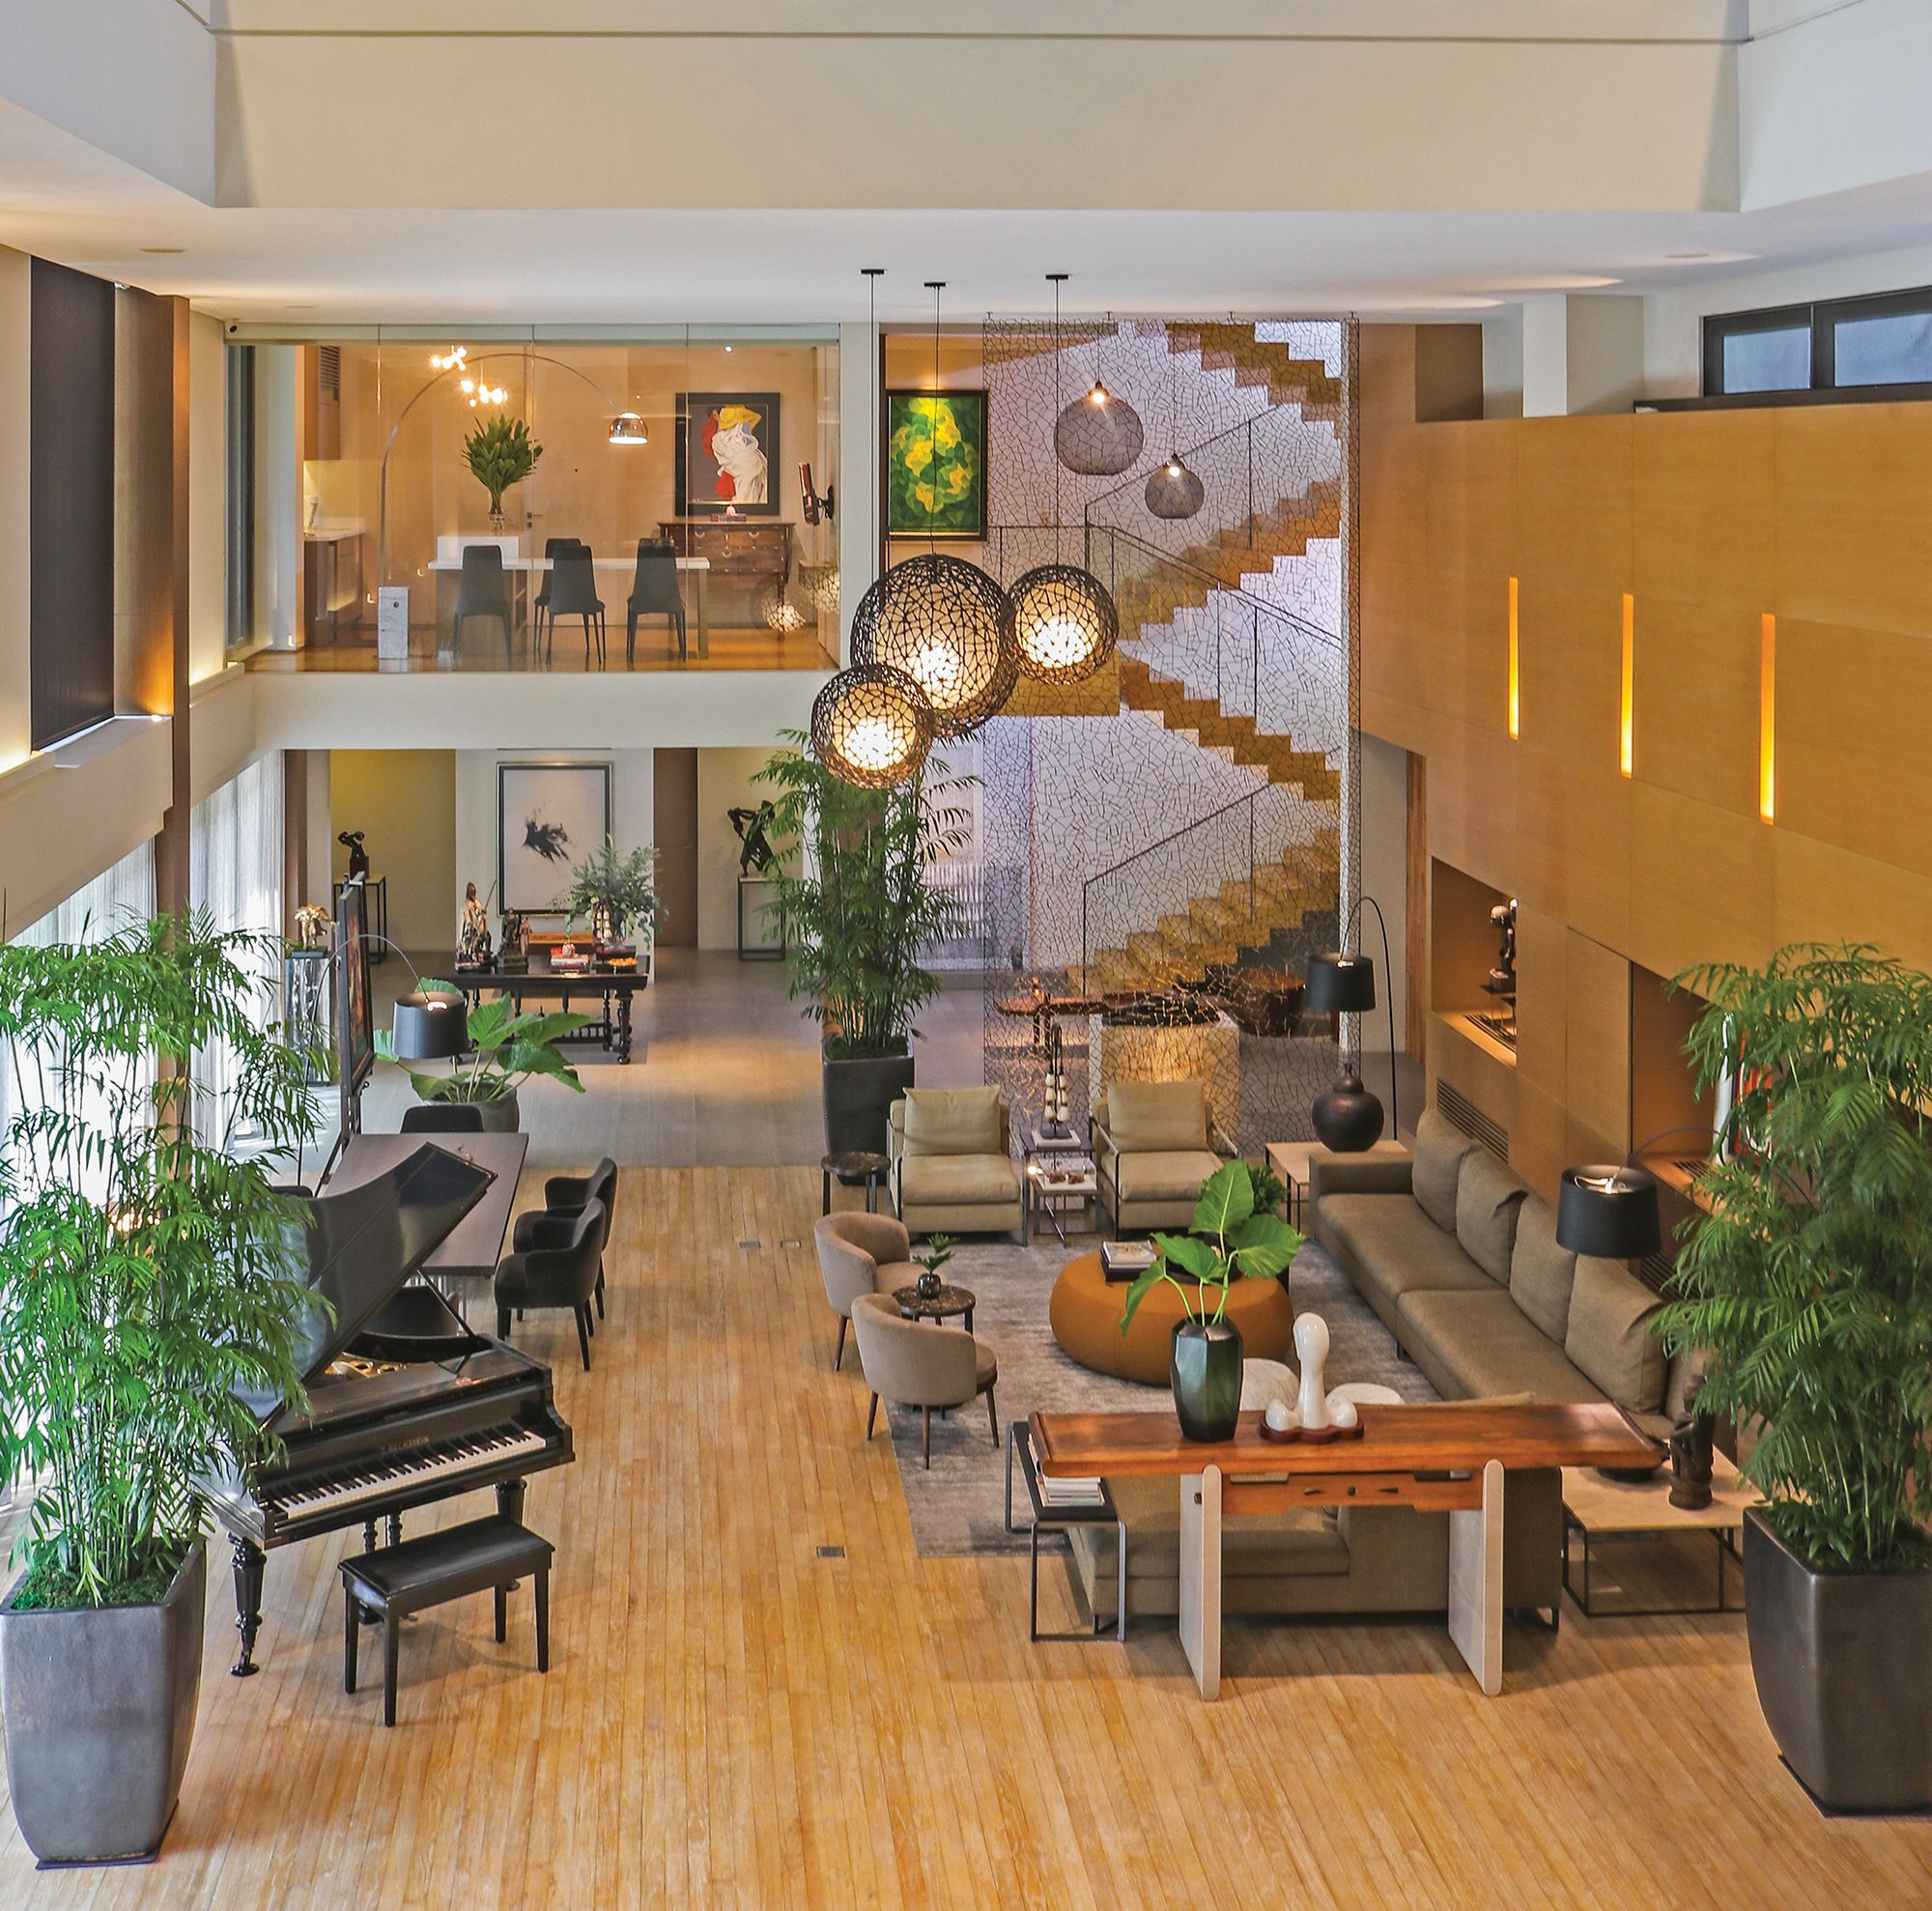 Home Tour: Gino Gonzales Uses The Family's Story As Design Inspiration For Their Home